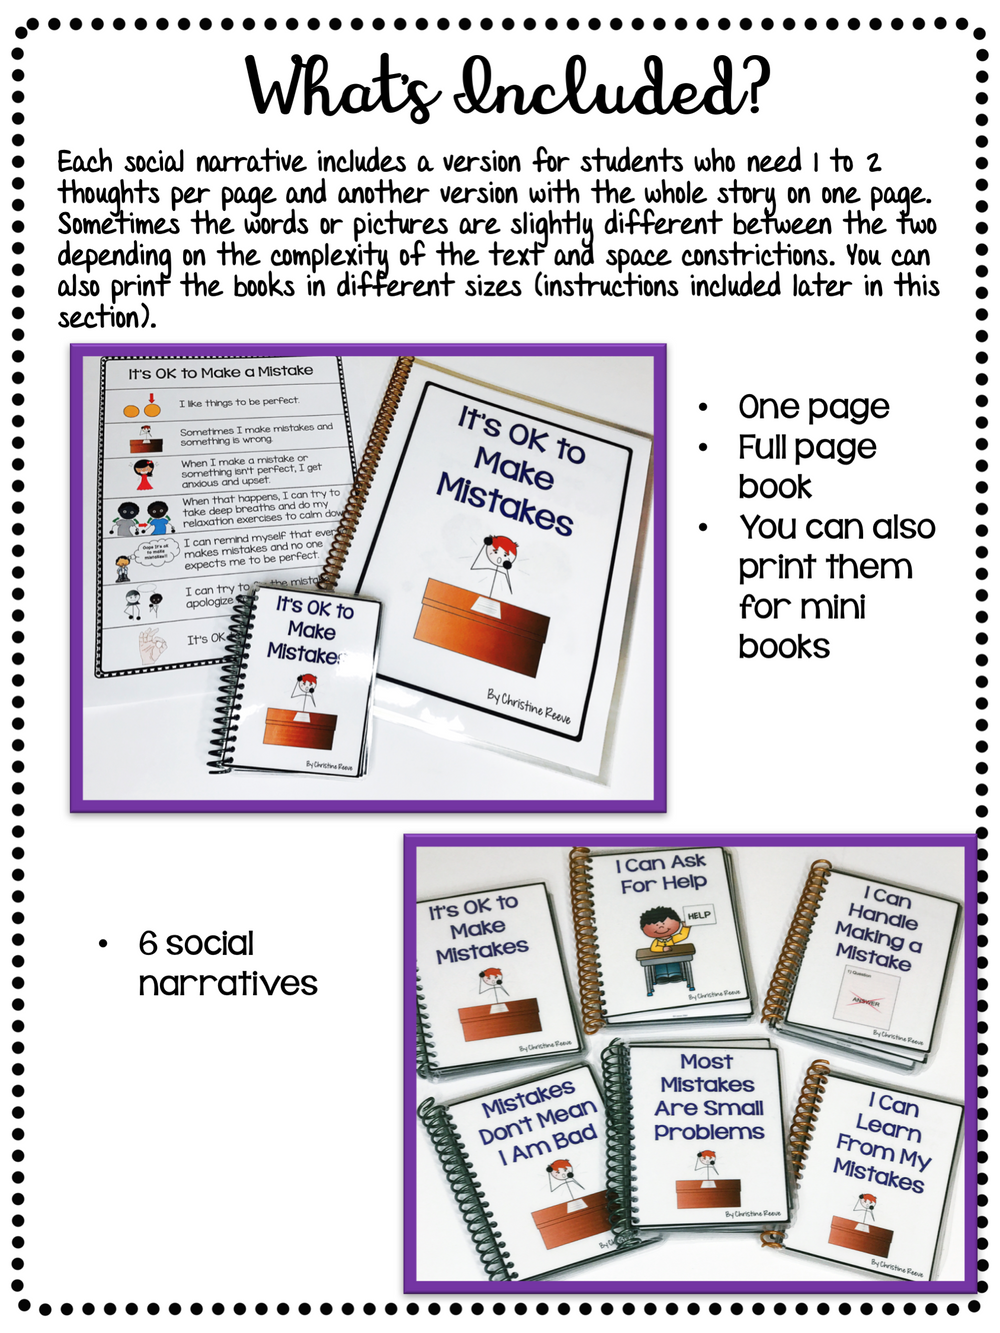 Behavioral Toolkit for Coping With Making Mistakes with Social Narratives - Autism Classroom Resources